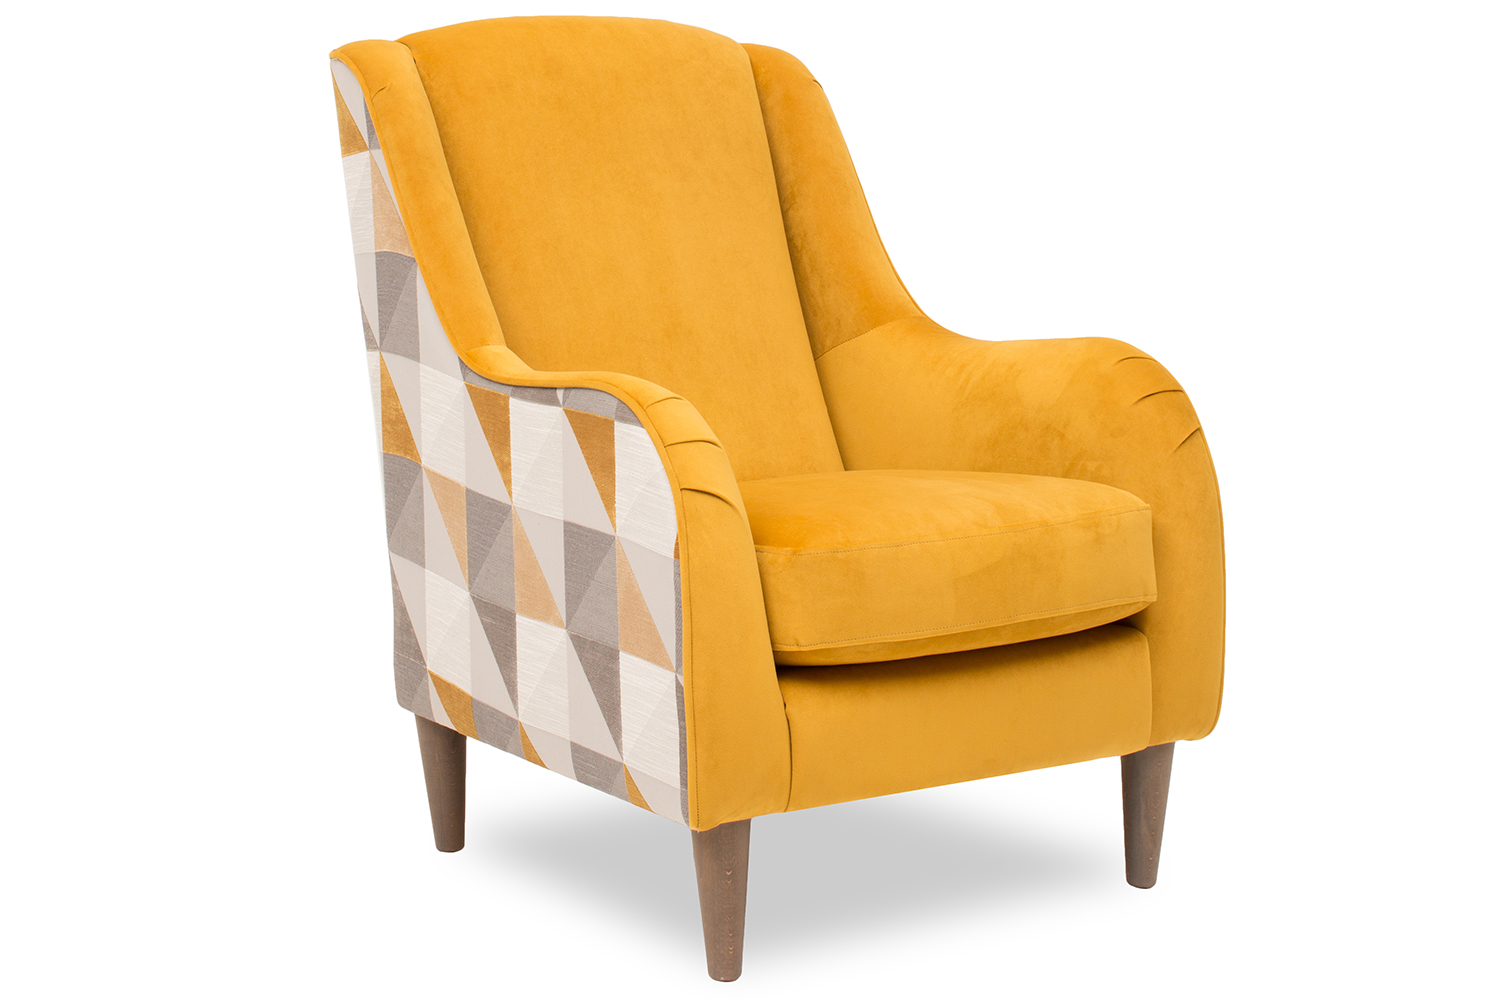 strandmon wing chair review wooden restaurant high canada holli accent ireland